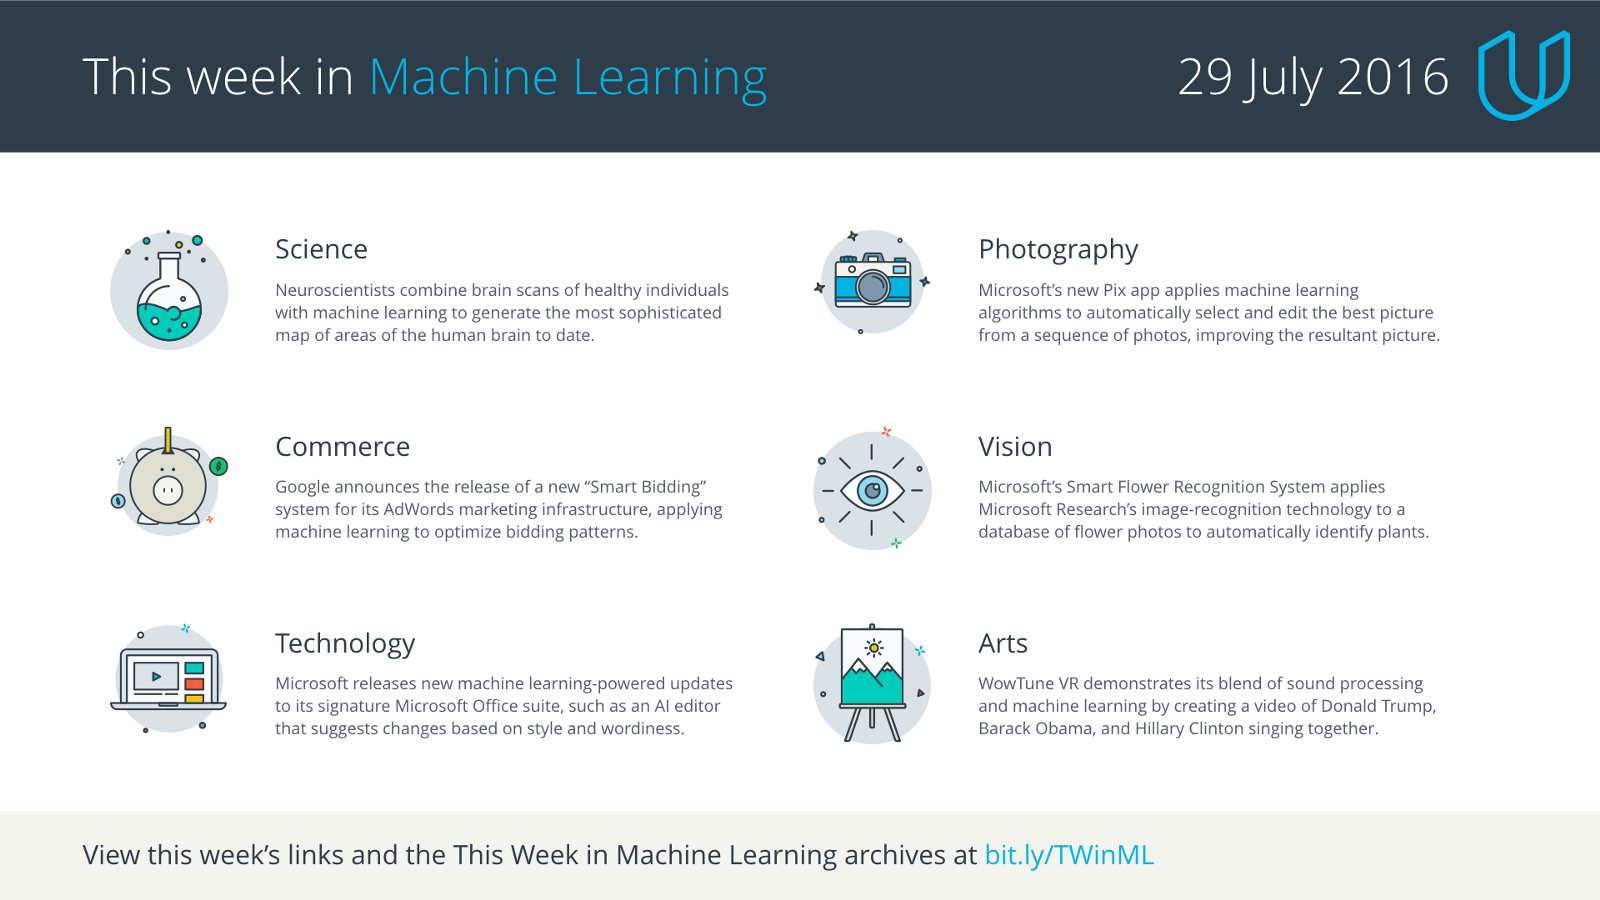 This Week in Machine Learning, 29 July 2016